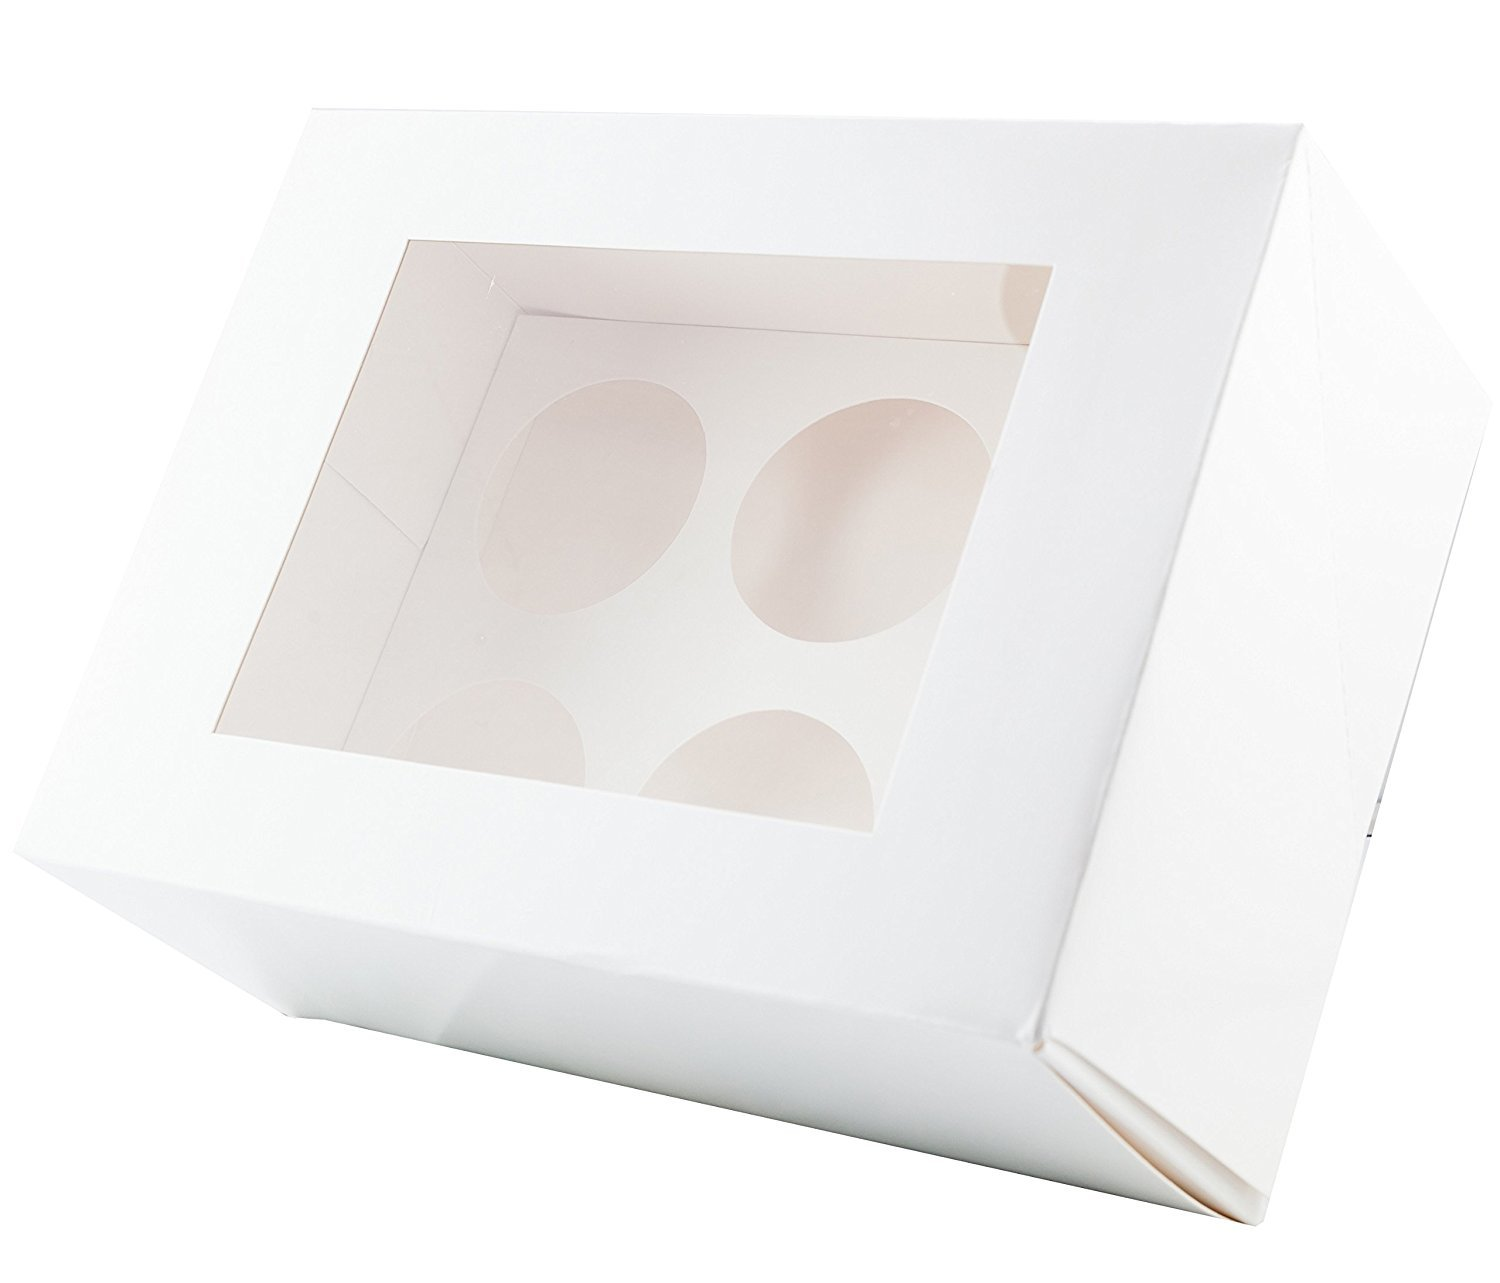 10x White Cupcake Boxes - 6 Holes Shireproducts 0754220471989